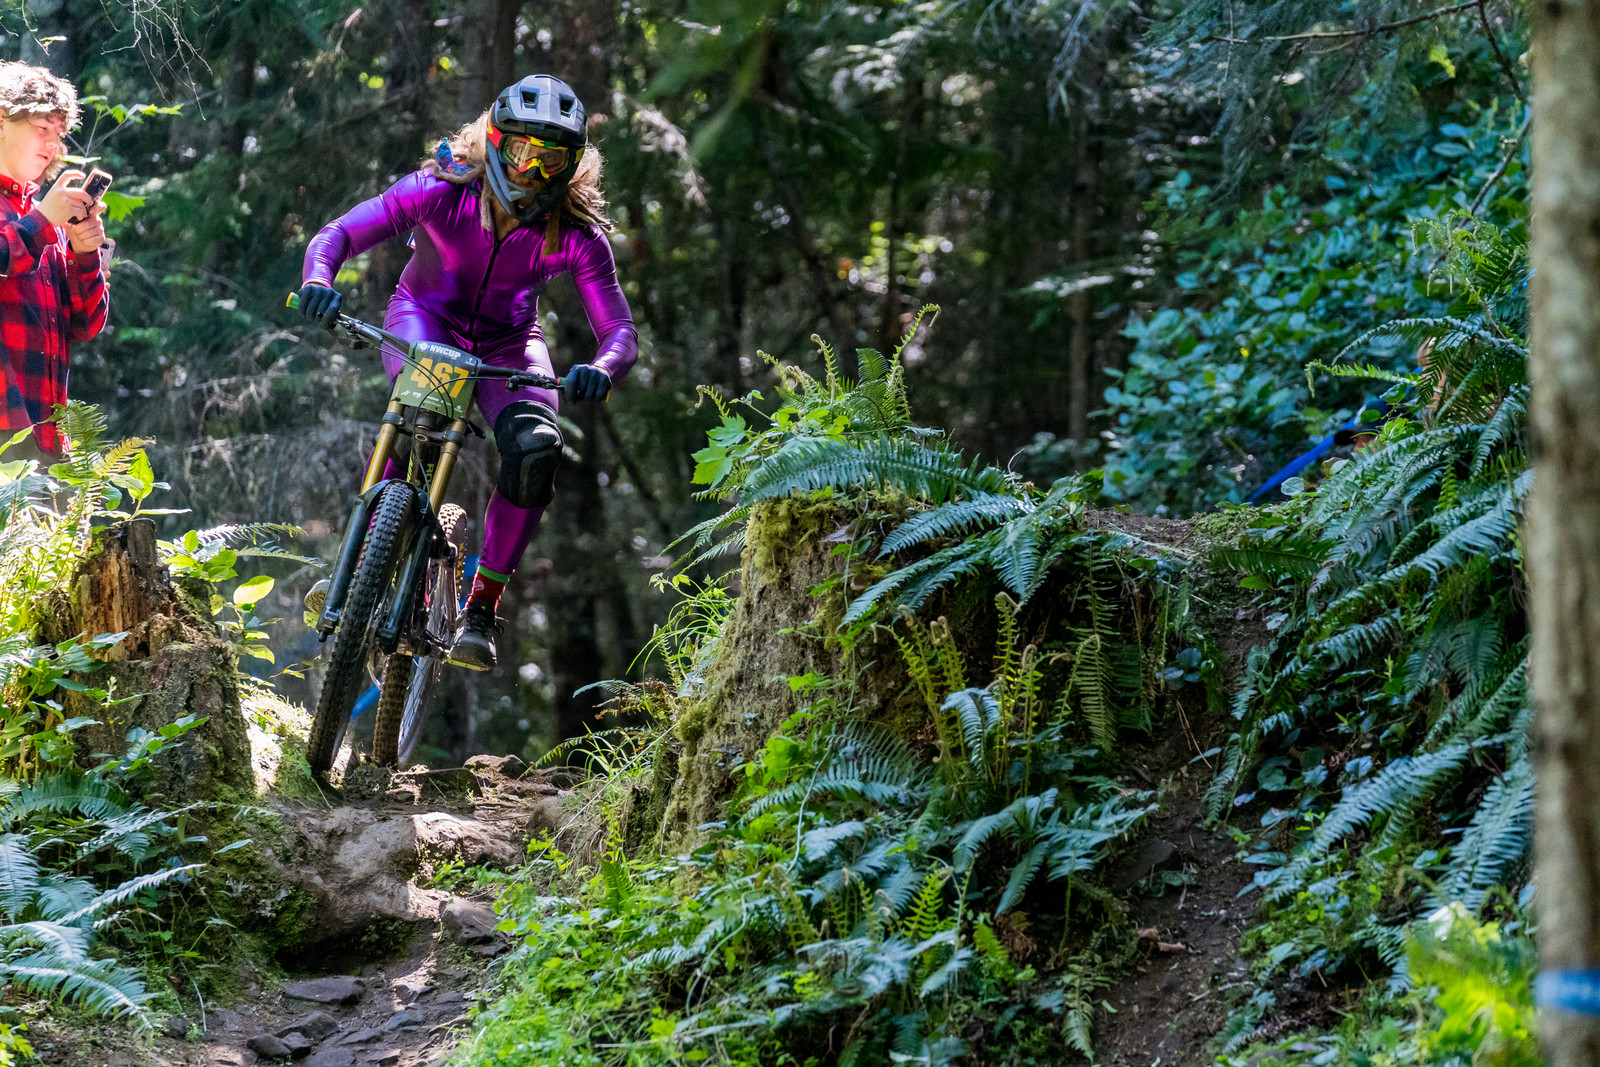 Blake Nelson with the UCI not approved purple skinsuit. NW Cup races are always a blast!